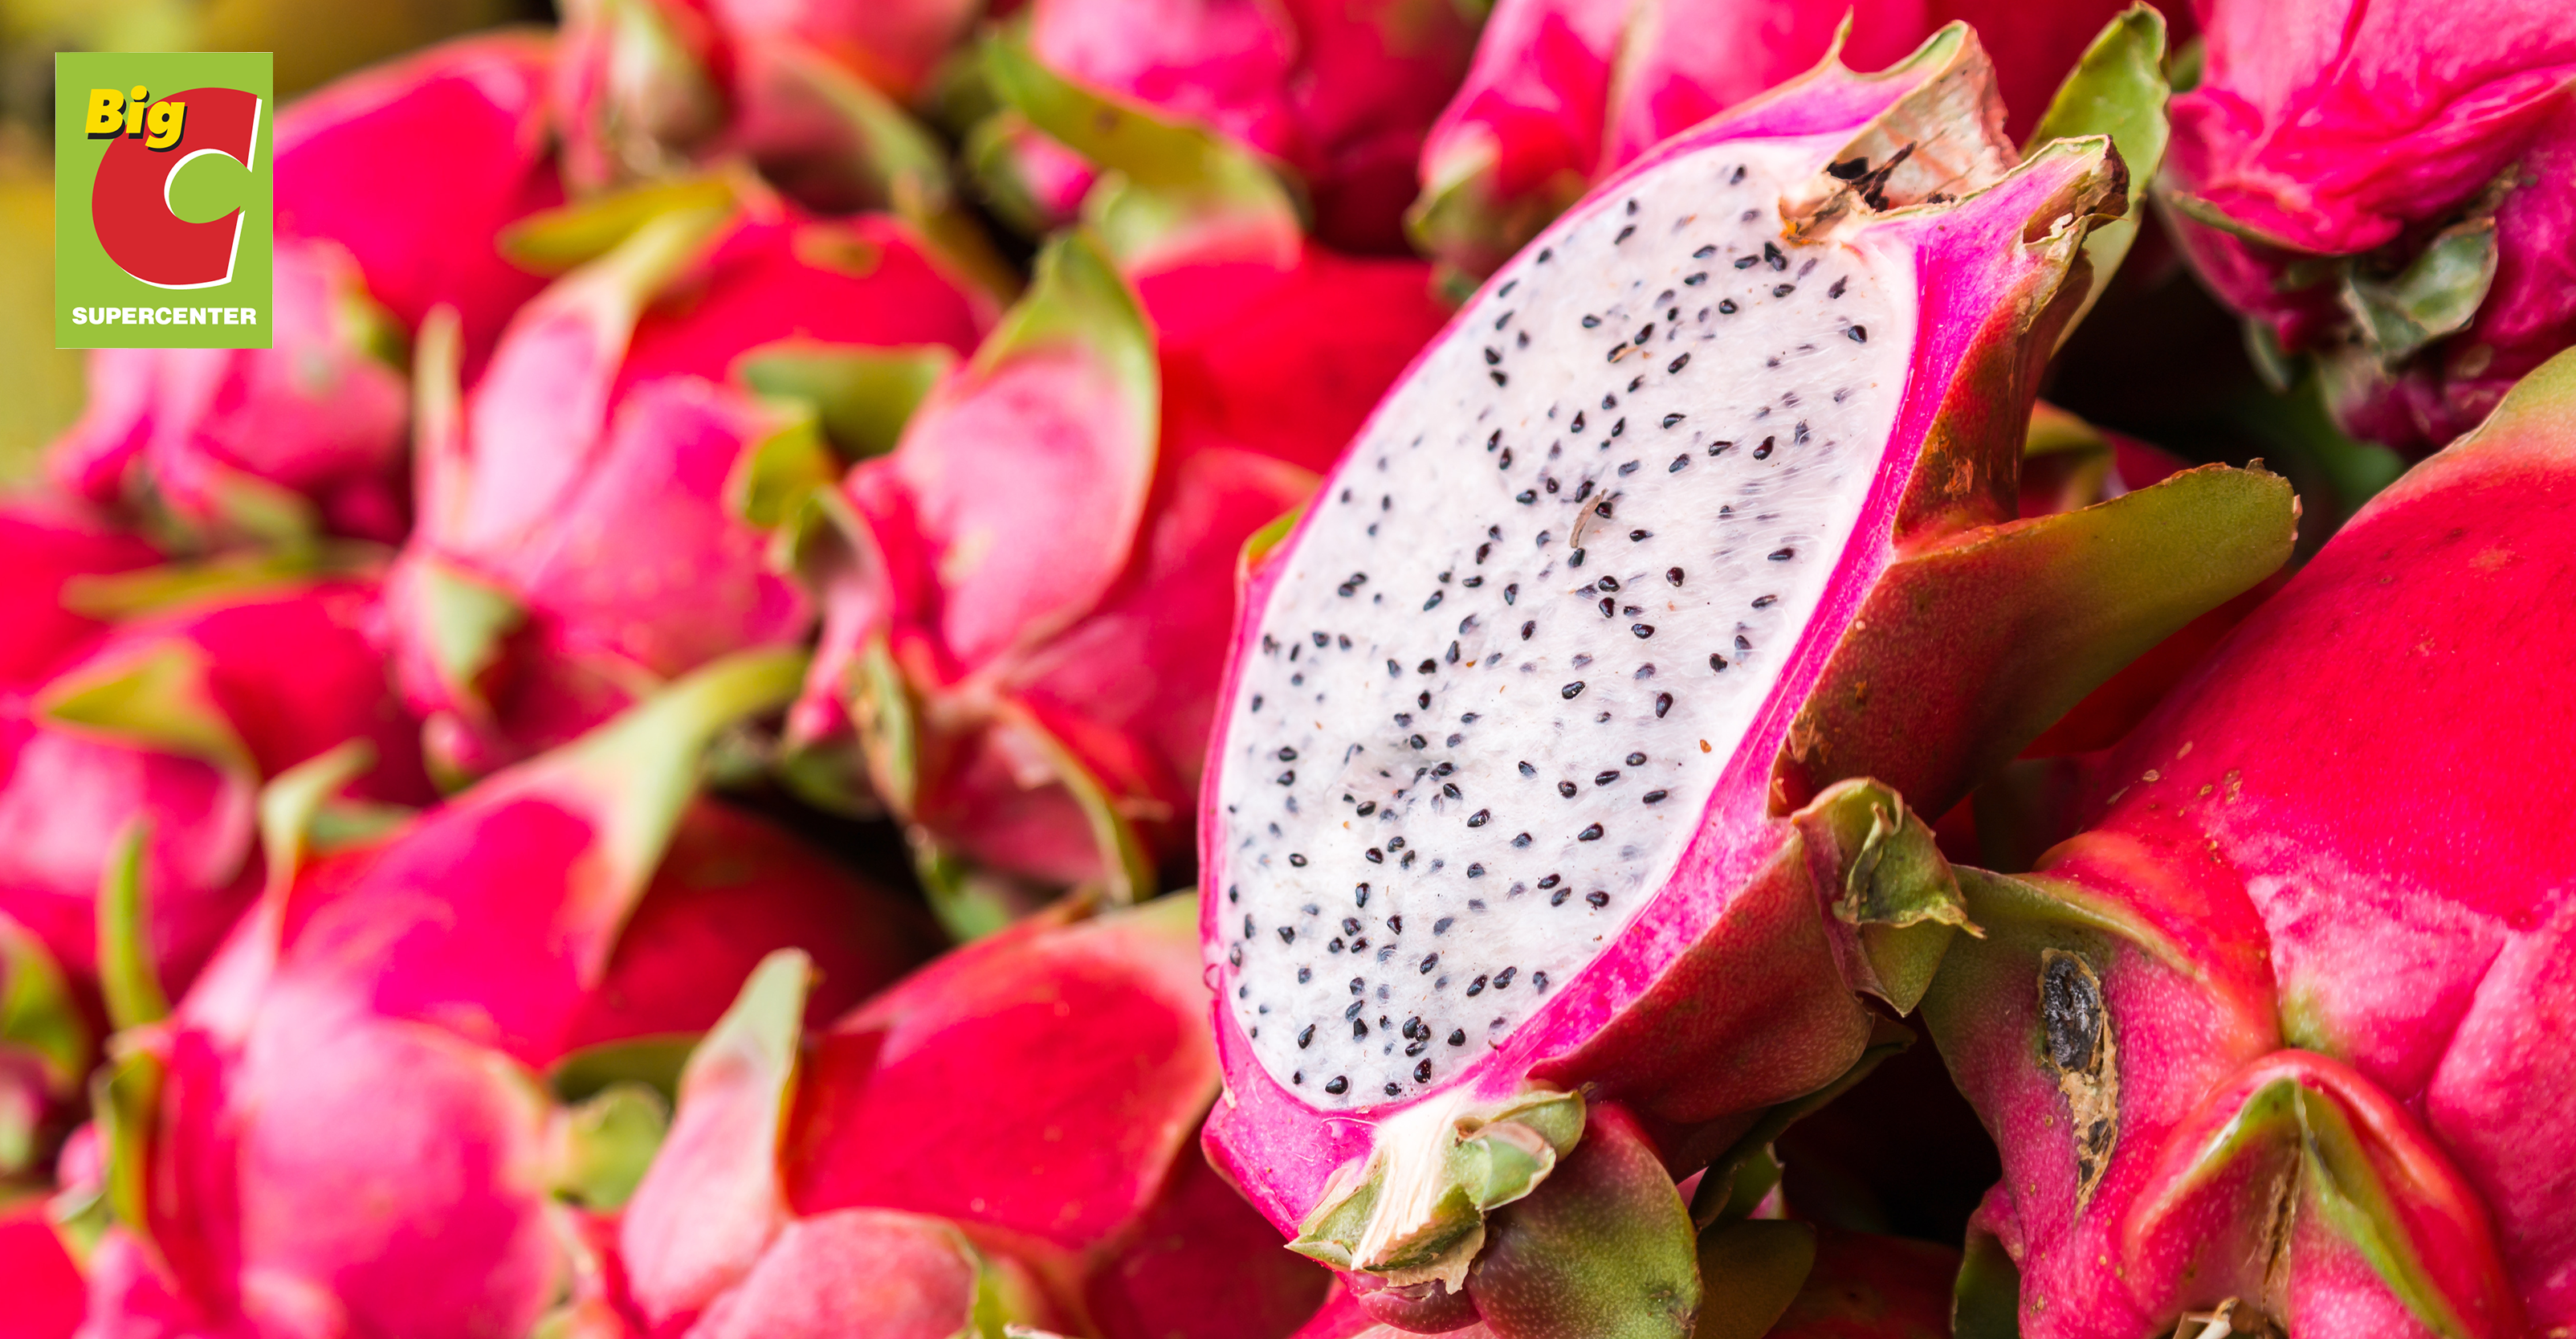 Big C & GO! to assist local farmers in marketing and selling 500 tons of Binh Thuan dragon fruits